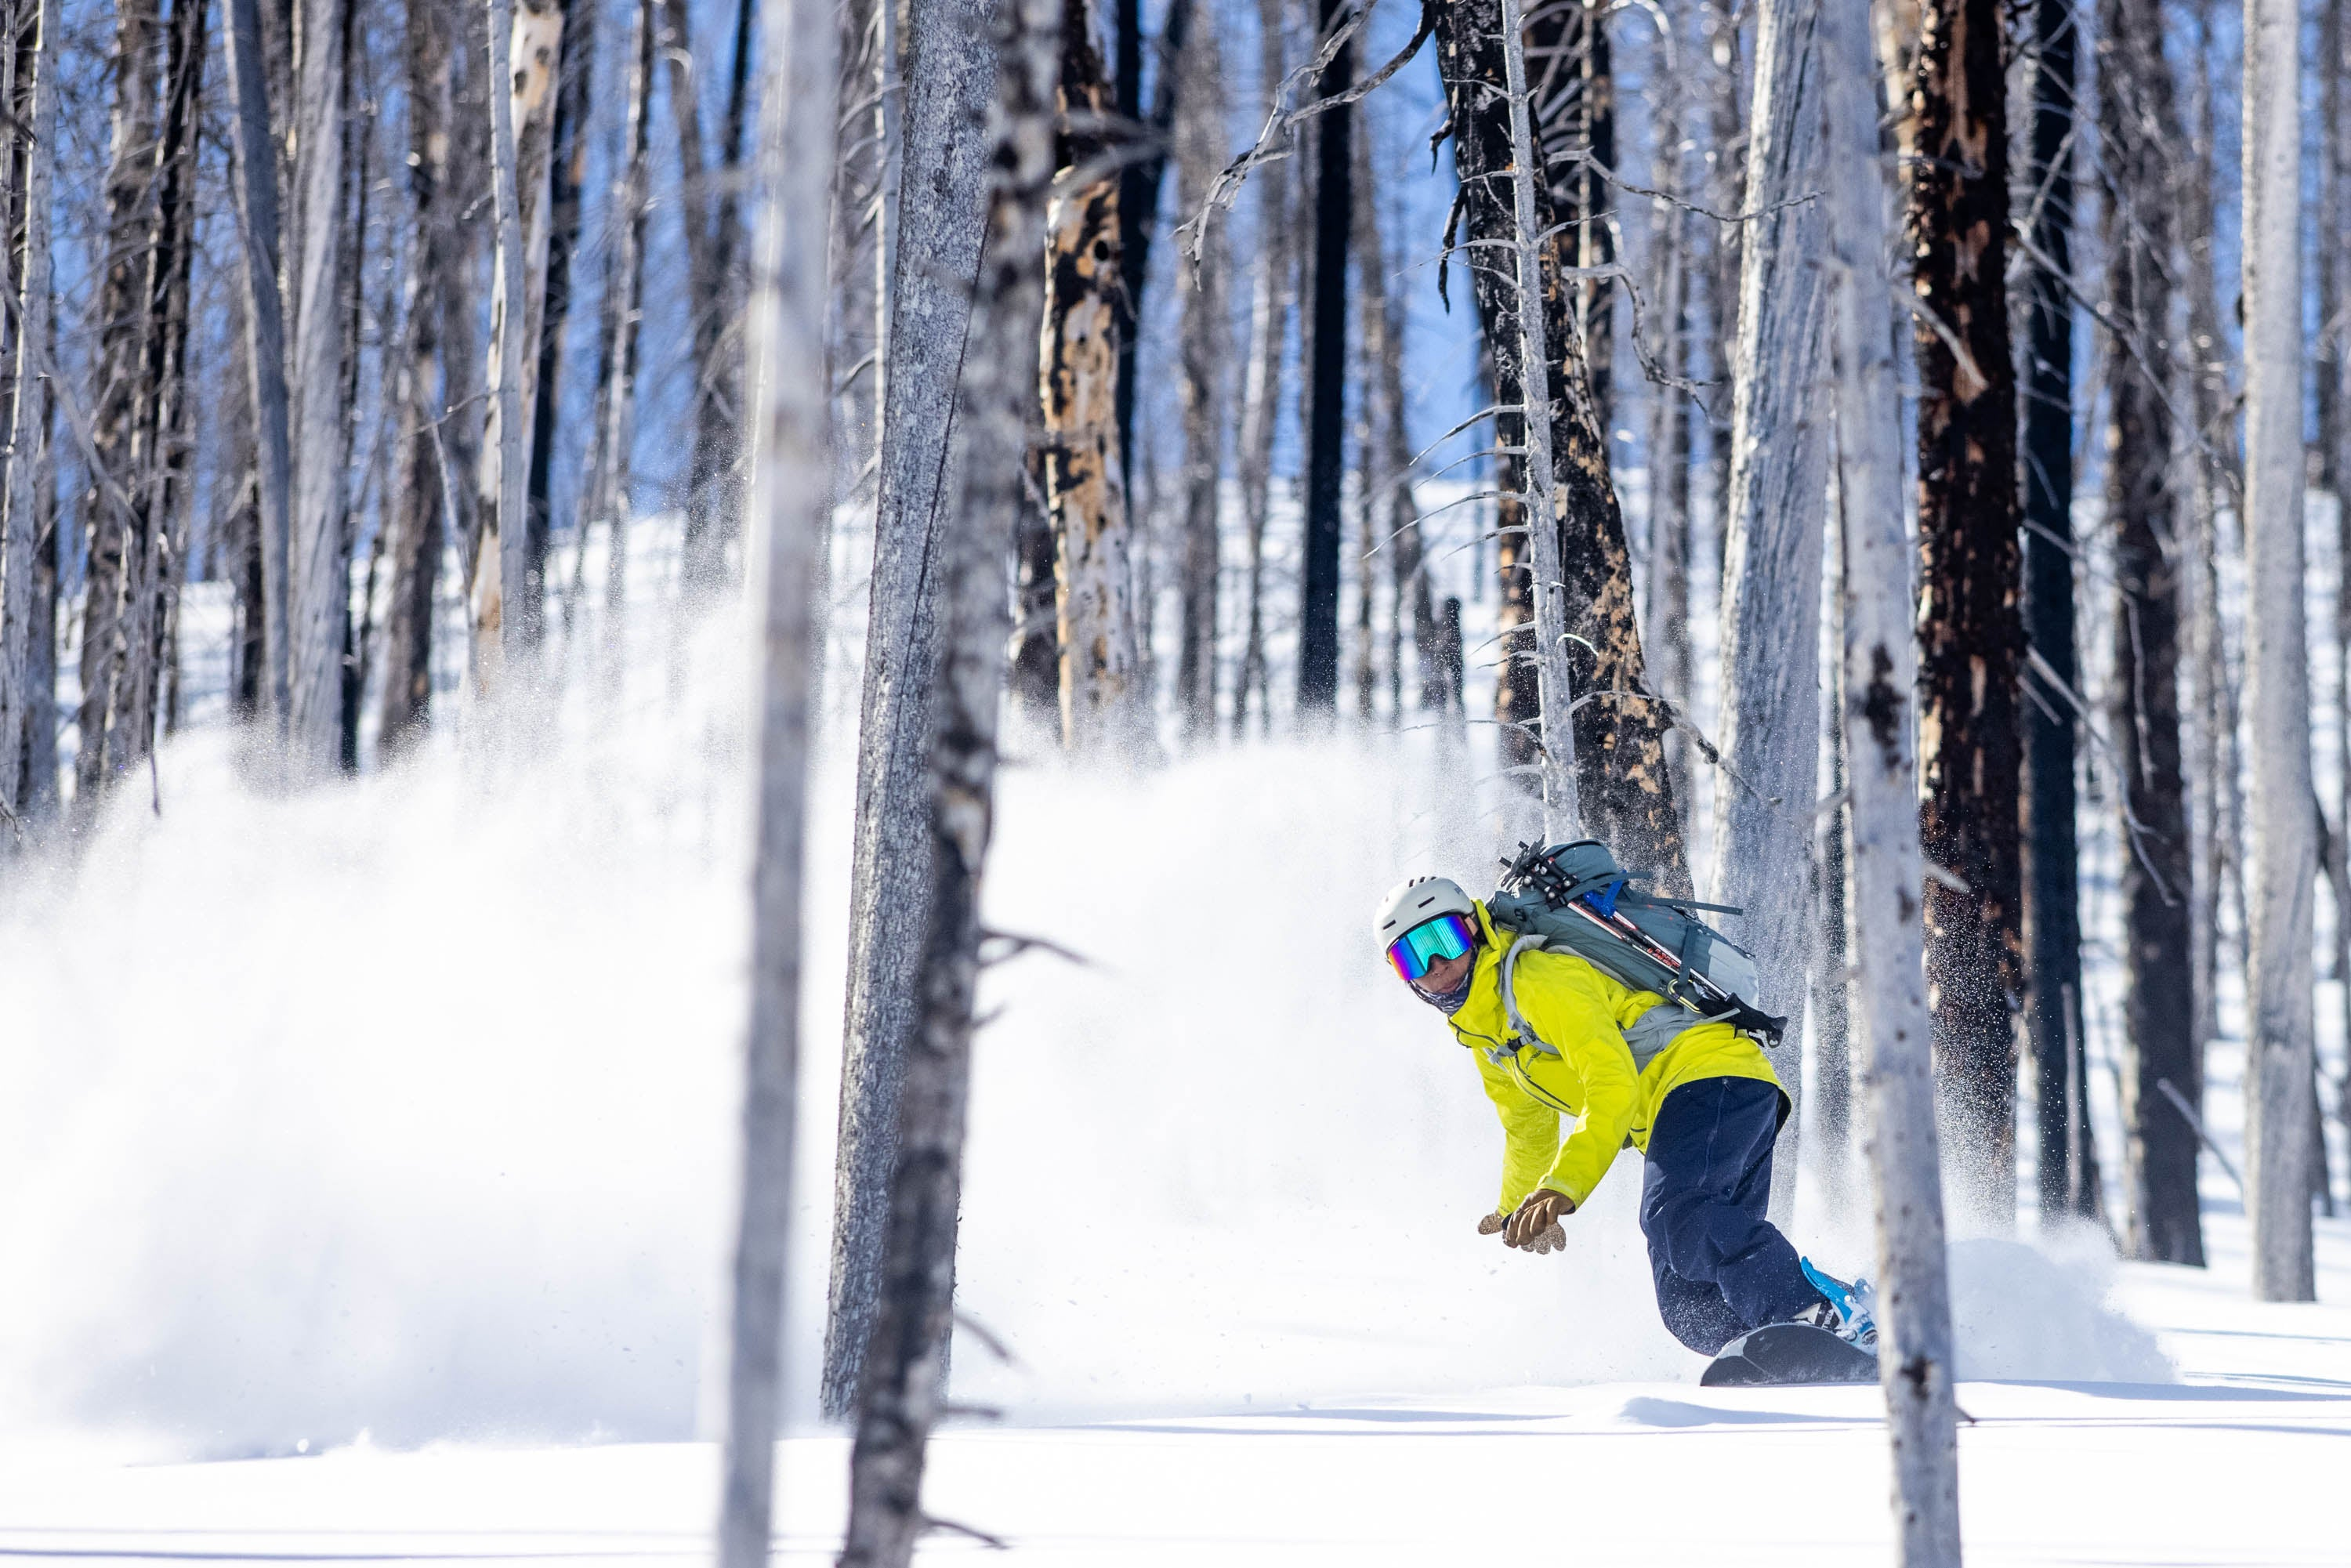 Latina AAPI athlete snowboards through a burned forest, remnants of human impact.